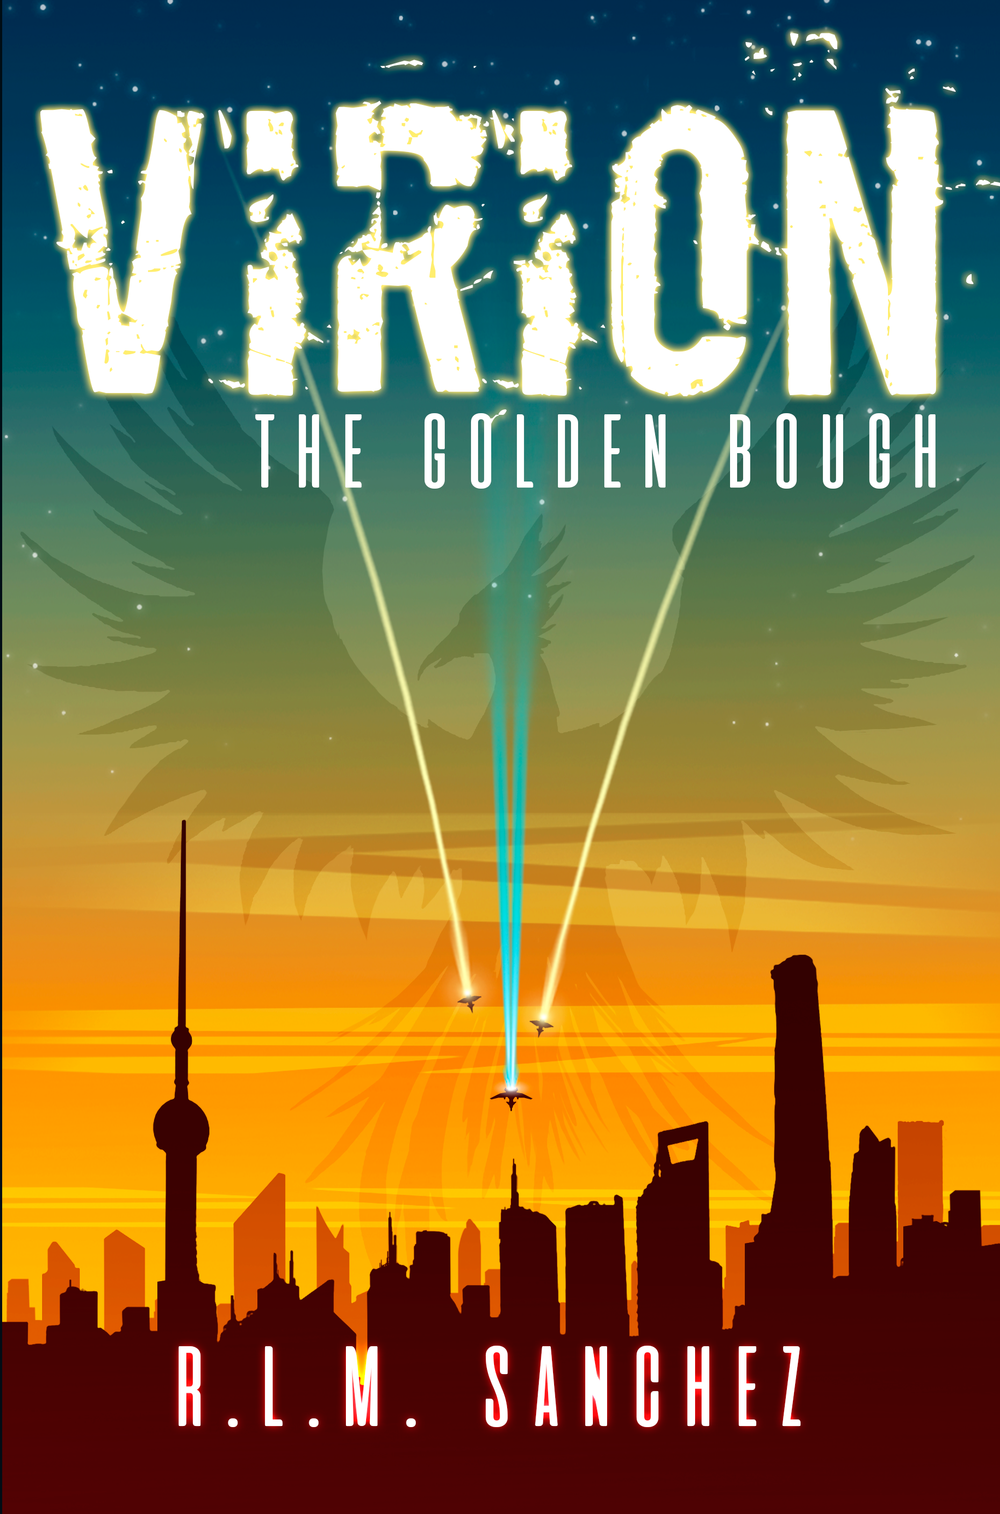 THE GOLDEN BOUGH (Book 2 Of the VIRION SERIES) - Now Available!300 million credits to the one who kills the Martian, but do the best bounty hunters in Freedom City even stand a chance?Earth Marshal Alan McKenna's investigation to find the Golden Bough detours when he apprehends a notorious hacker and tabloid nightcrawler, The Mad Black Hatter, whom informs him that the largest bounty in centuries has just landed on his head, paid by the Golden Bough itself. The hacker has connections to the Hasker Syndicate, a ring of illegal undercity information brokers that will aid him in uncovering the Golden Bough's illusive leader, for a price.Hot on the trail of the mysterious fighter craft that attacked the Earth Naval blockade, Sky Marshal Henry Stokertakes his search to Shanghai to find the fighter wing may have ties to the Tianlong Group, the largest aerospace defense contractor in the system. When he gets too close, the Golden Bough's leader, known only by his alias, The Commander, orders the Sky Marshal's termination. After an intense dogfight, Stoker finds the proof he is after, but to go toe to toe with one of the largest corporations may spell danger, even for a Marshal.The Commander remains hidden as he plots with bio-industrial giant ValiantCorp, funding research into his cure for the Black Cell while also securing an alliance with the notorious undercity gang, Wargame and with Naval commitment from Tianlong, he is laying his pieces for something sinister, but for what? To attack Earth? Or another entity entirely? Only McKenna can find out, but will he discover the plot and apprehend the Commander before it's too late? Or will Earth be left to another fate? Find out in The Golden Bough.